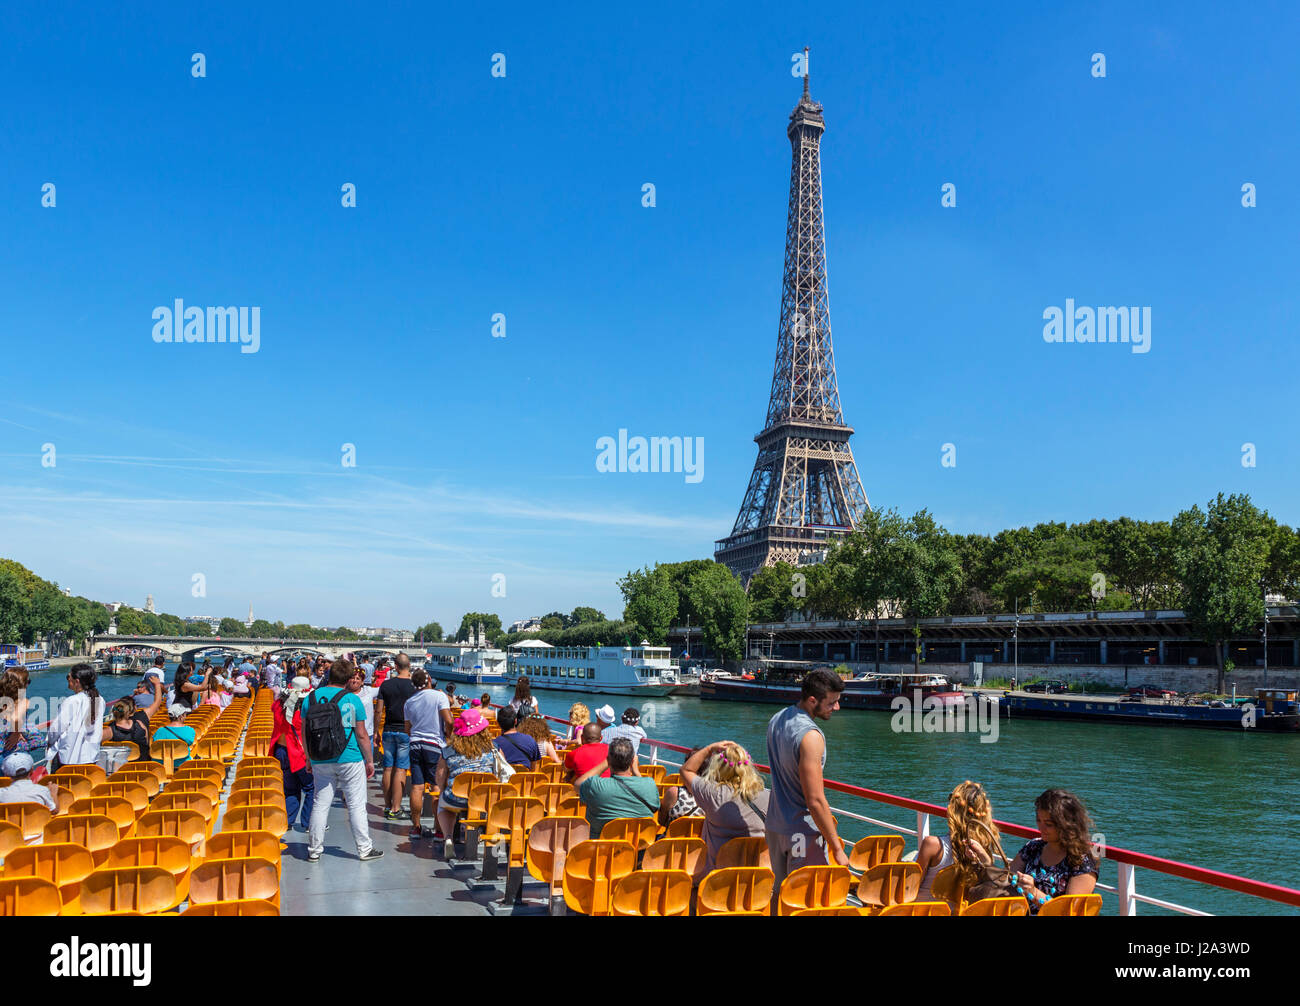 View of the Eiffel Tower from a Bateau Mouche on the River Seine, Paris, France - Stock Image